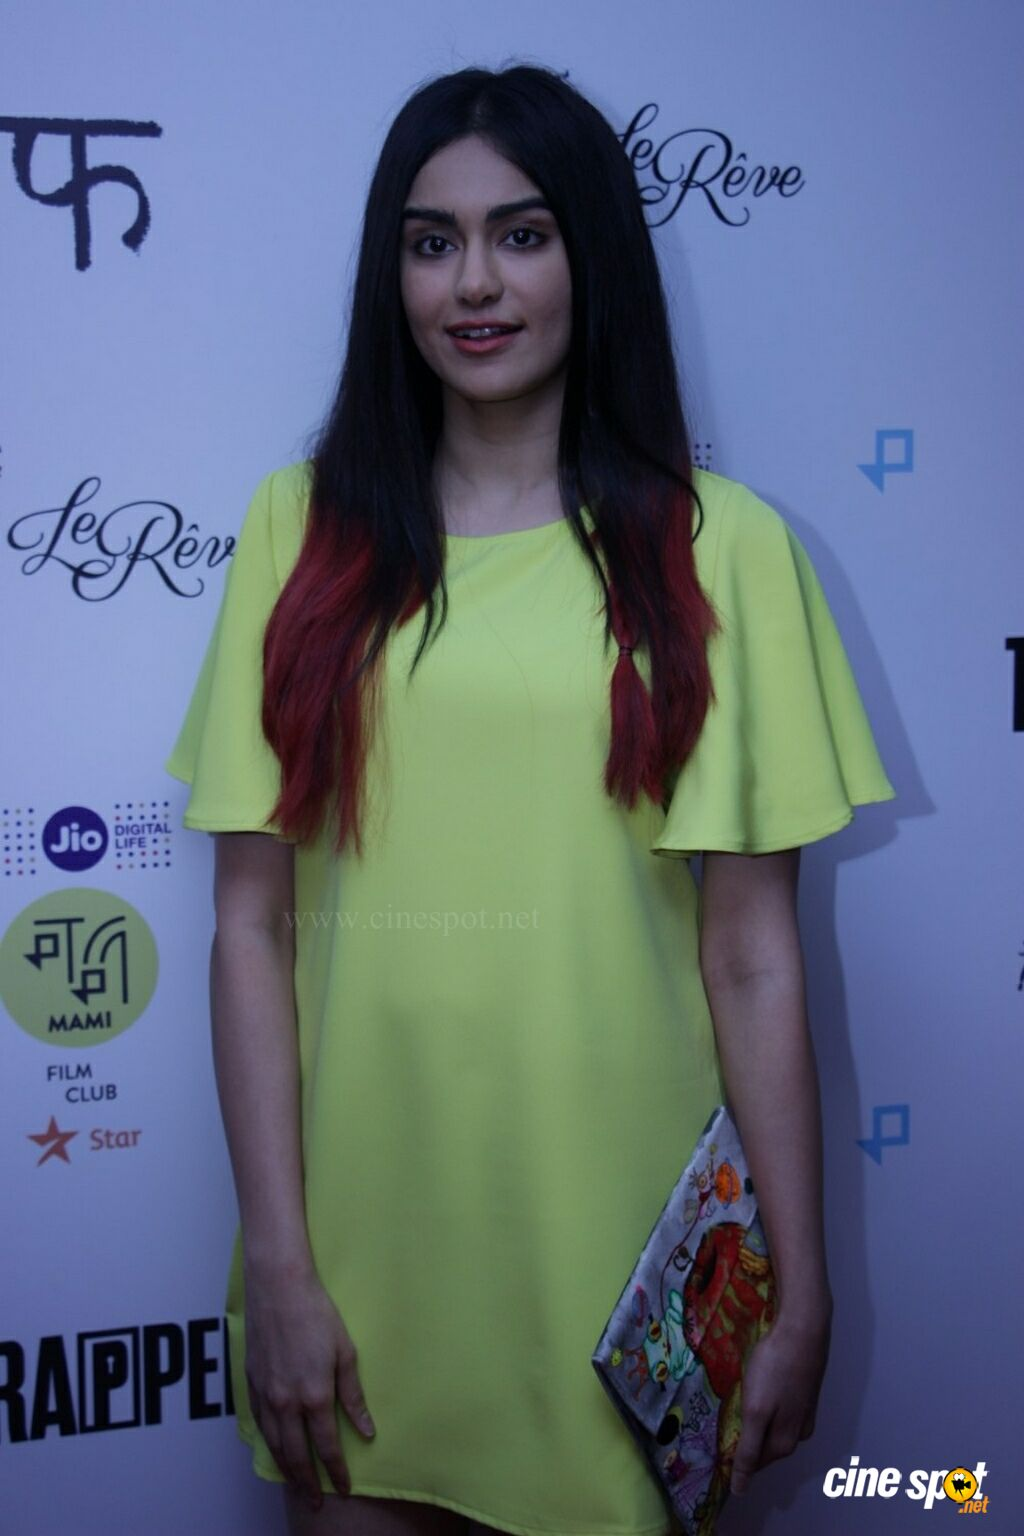 The Jio MAMI Film Club With Stars (16)